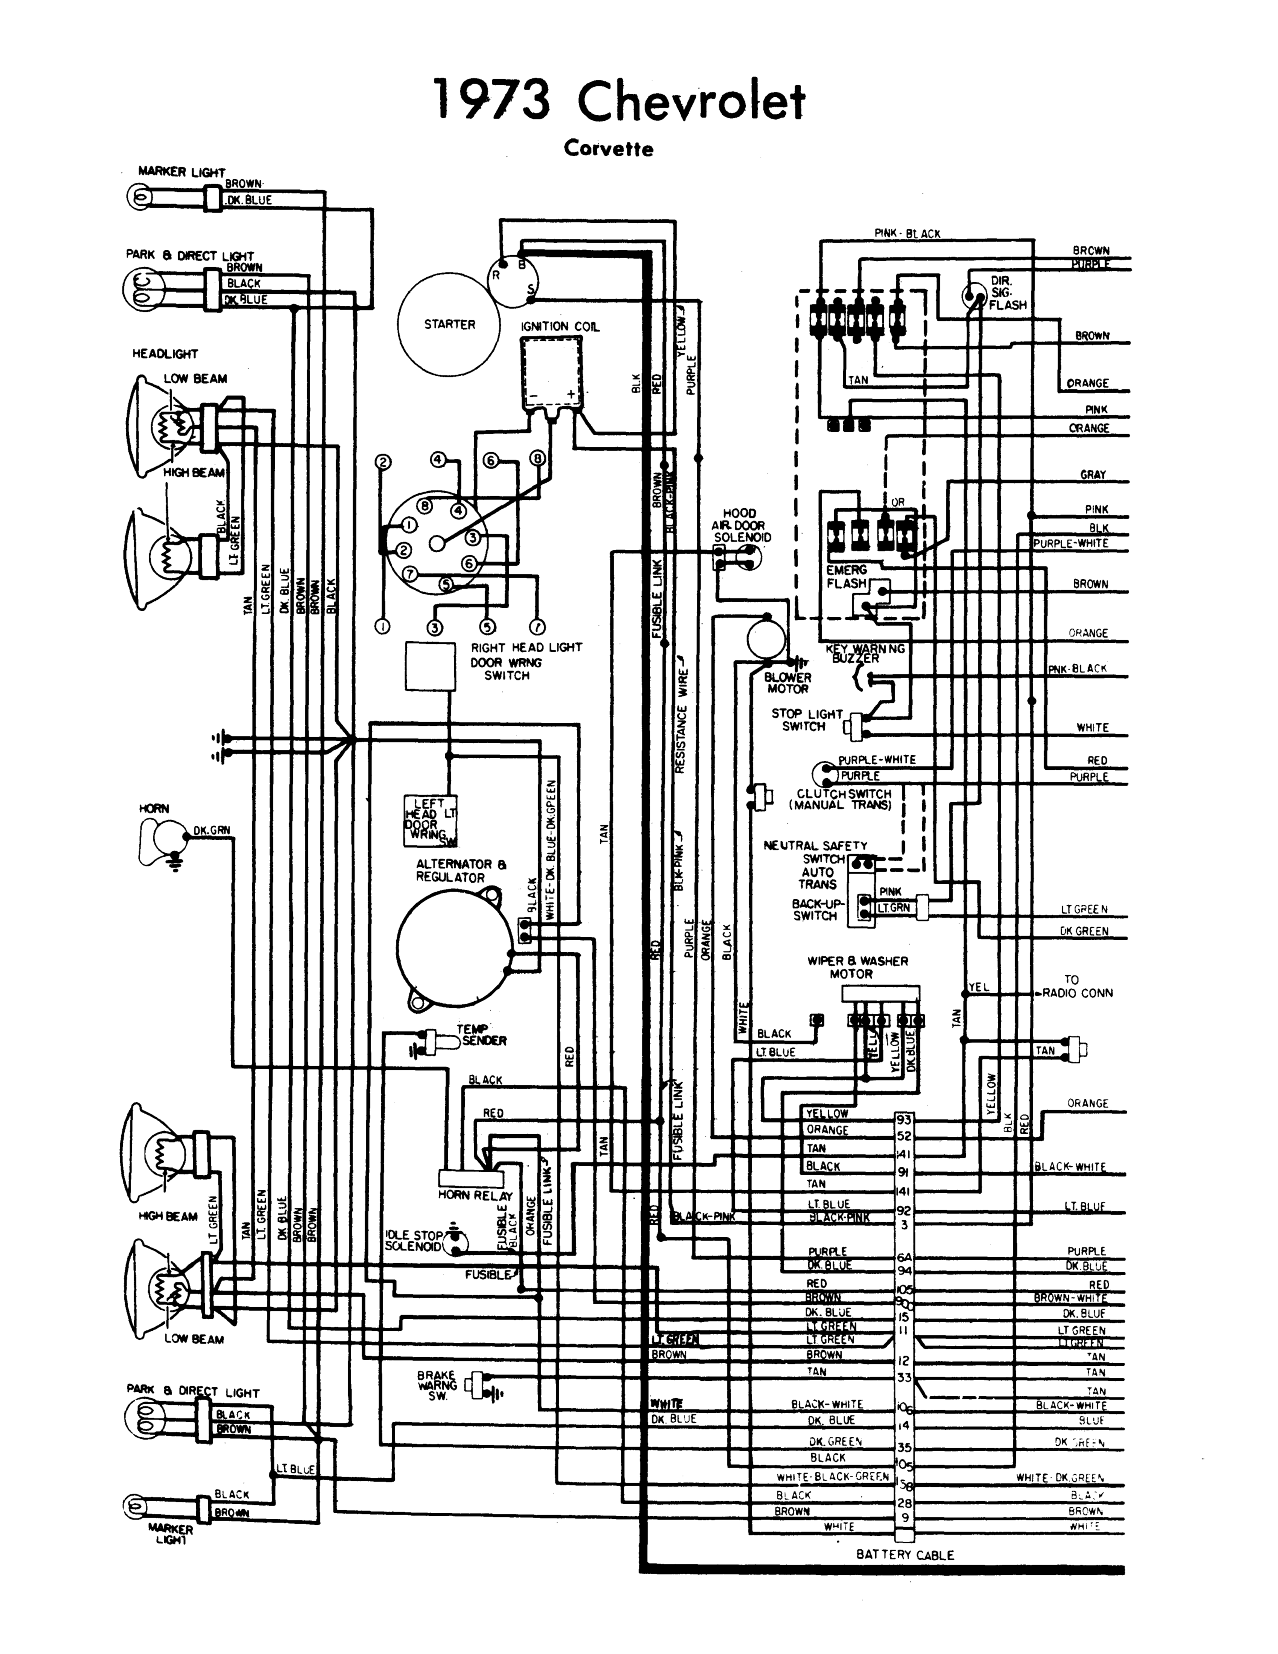 hight resolution of wiring diagram 1973 corvette chevy corvette 1973 wiring diagrams